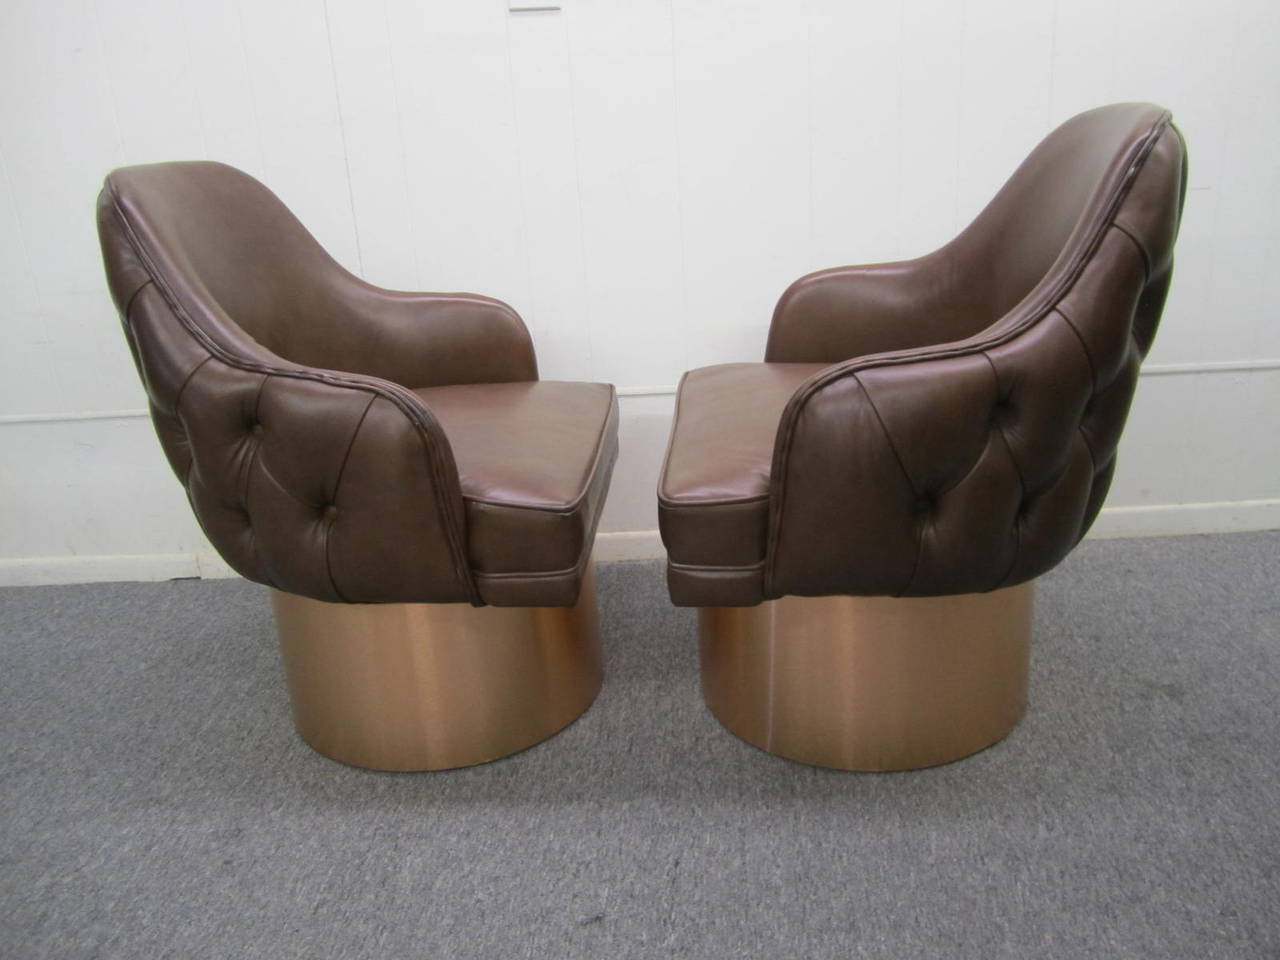 Newest Chocolate Brown Leather Tufted Swivel Chairs Intended For Excellent Set Of Four Milo Baughman Style Tufted Back Leather Swivel (View 7 of 20)